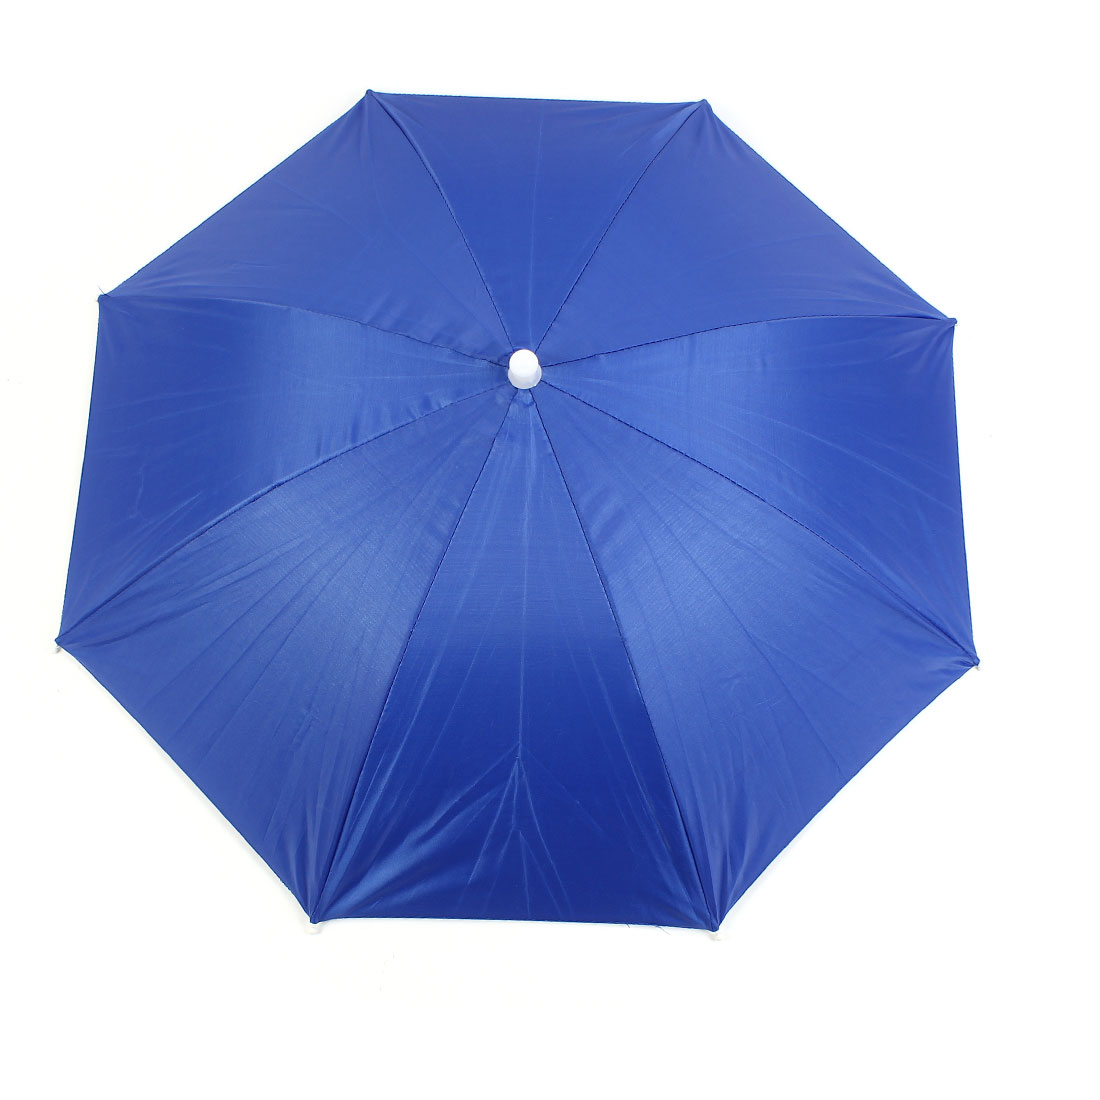 Camping Hiking Beach Headwear Polyester Umbrella Hat Headwear Royal Blue